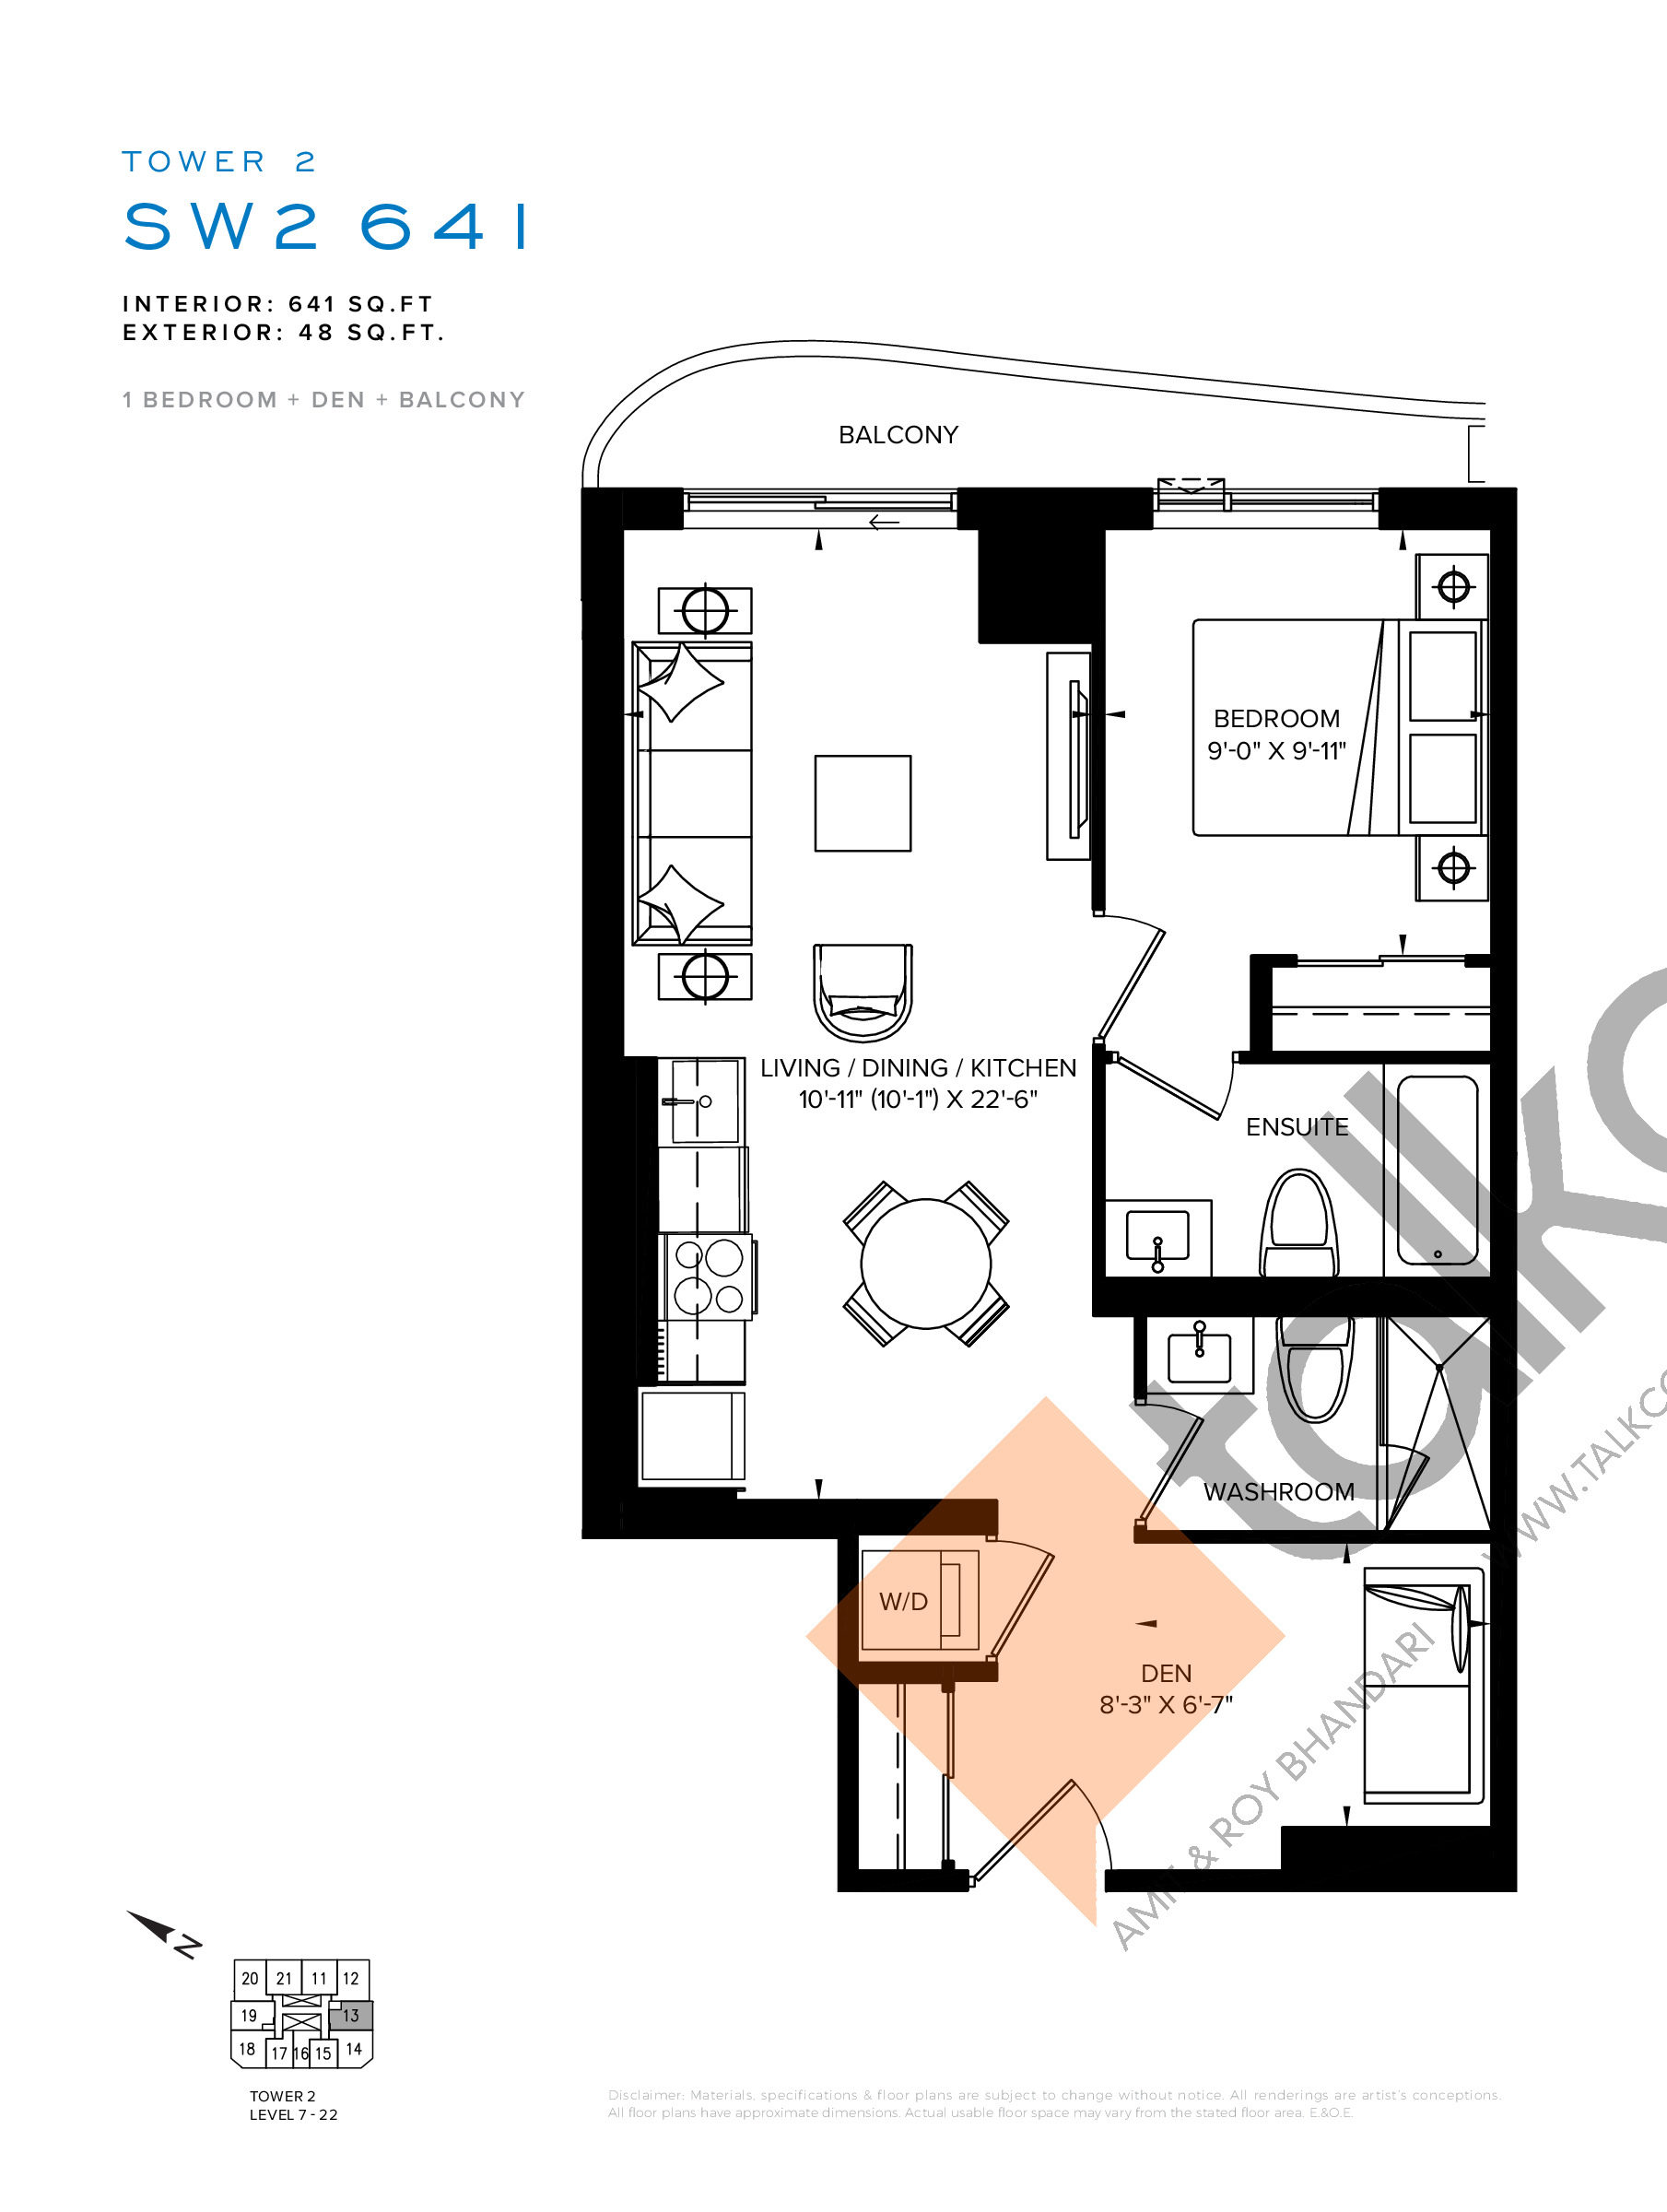 SW2 641 Floor Plan at SXSW Tower 2 Condos (SXSW2) - 641 sq.ft